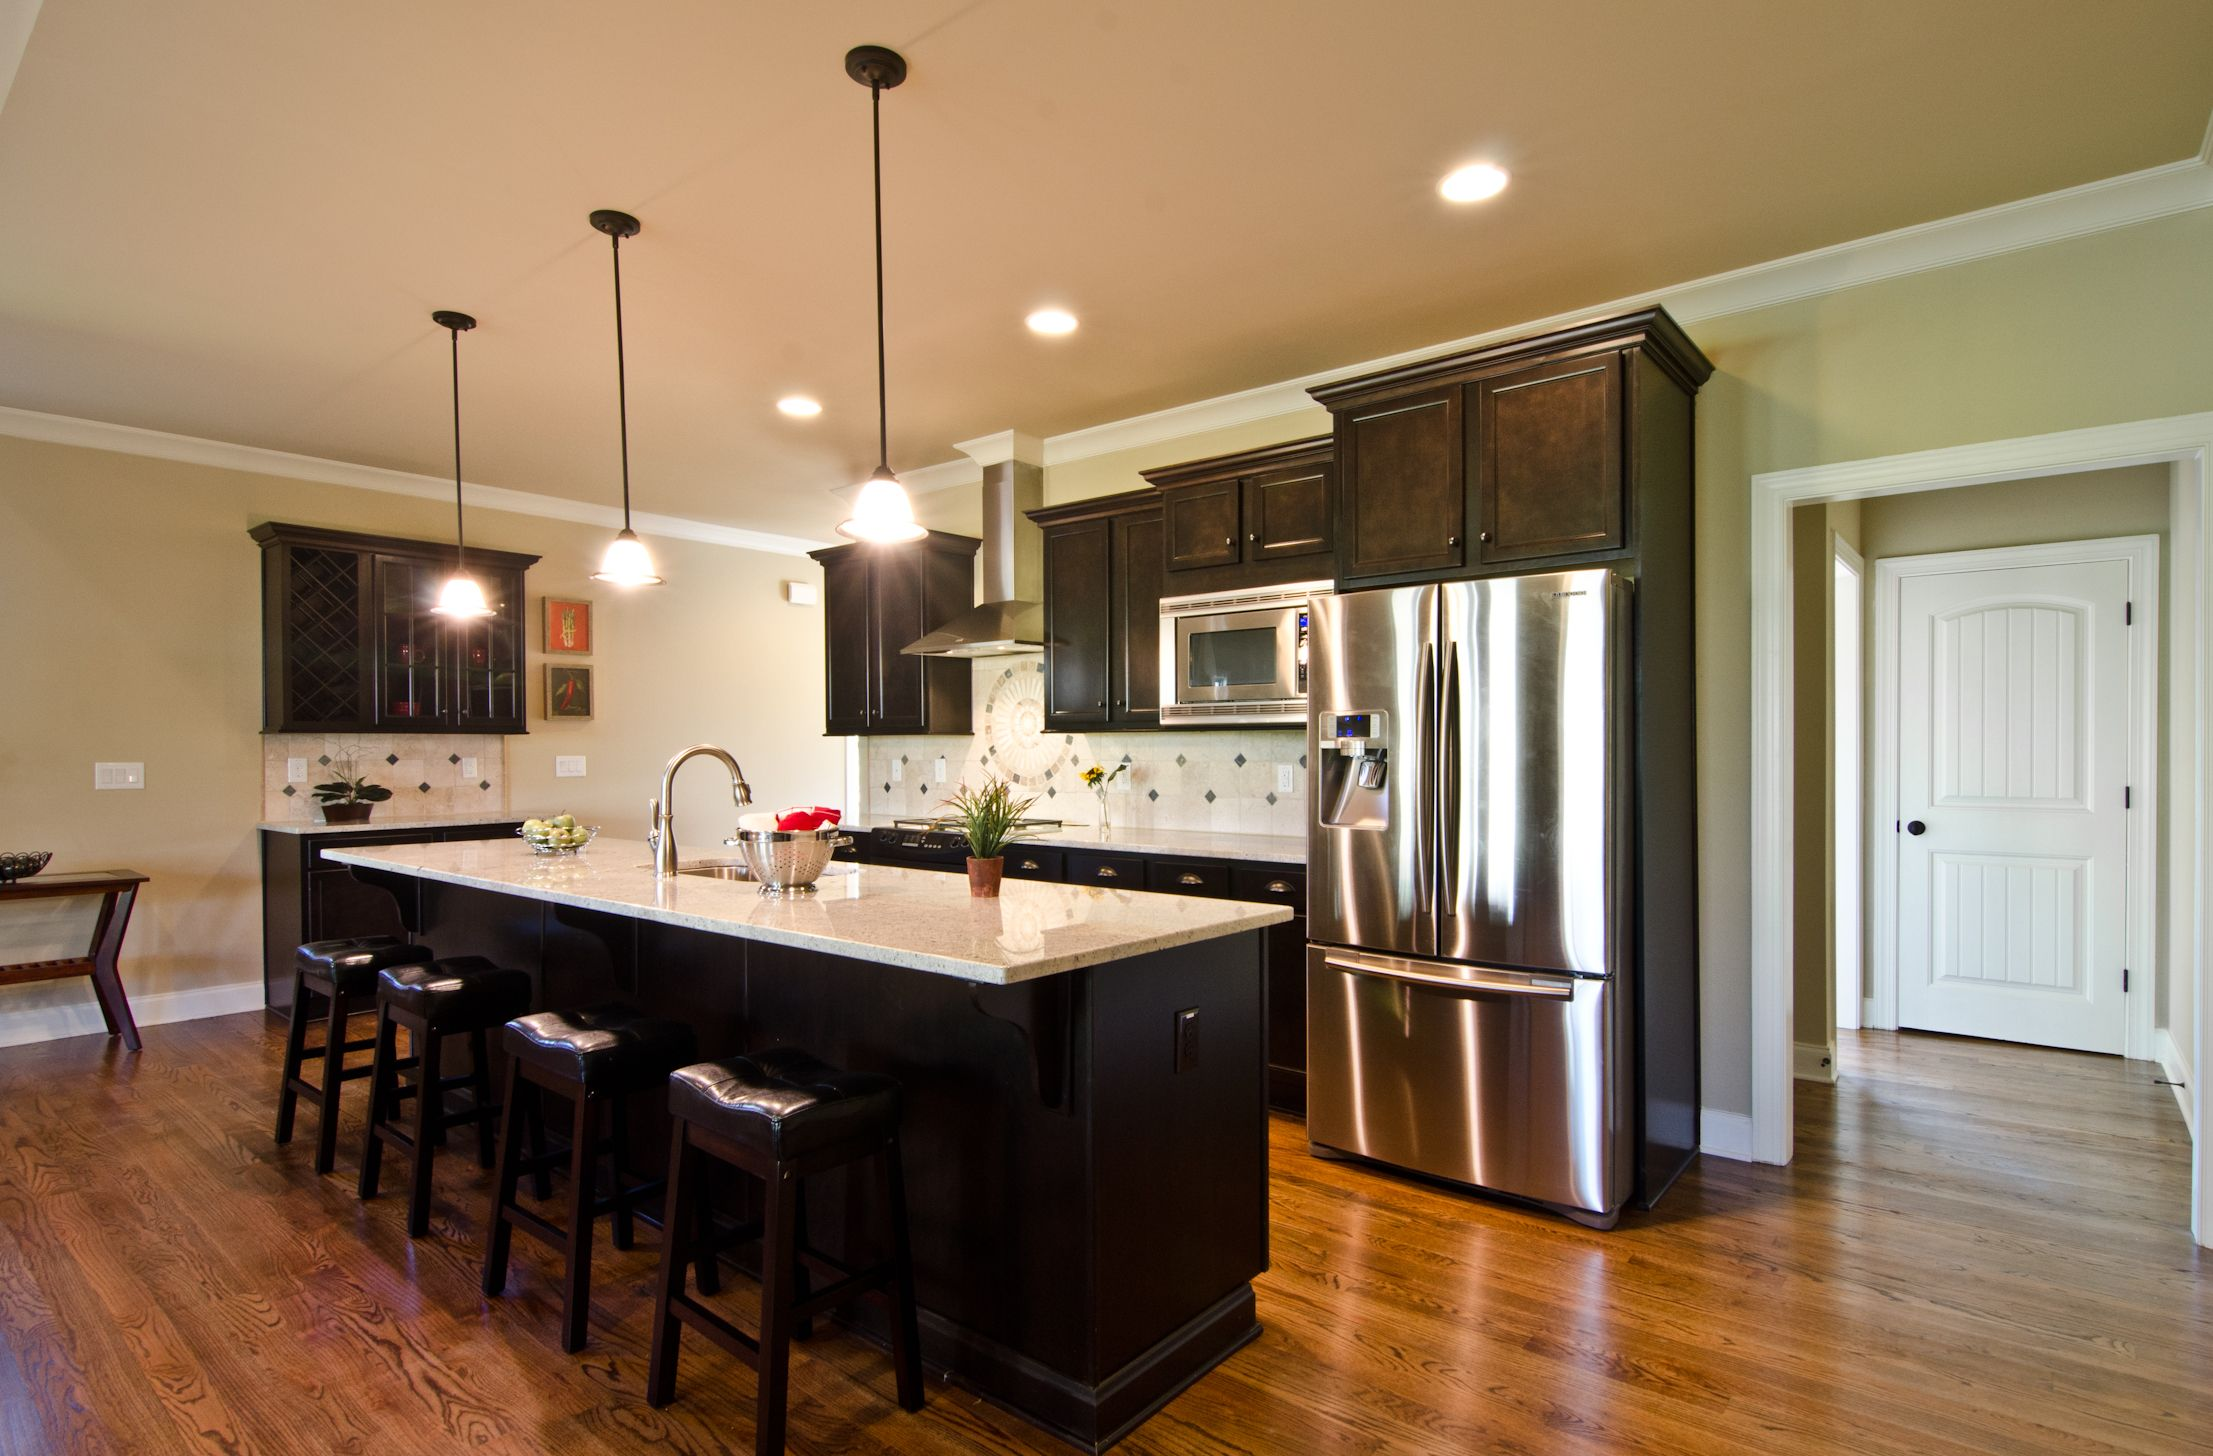 Most Popular Kitchens 2014  Popular Kitchen Renovations To Try Captivating Interior Design Kitchens 2014 2018